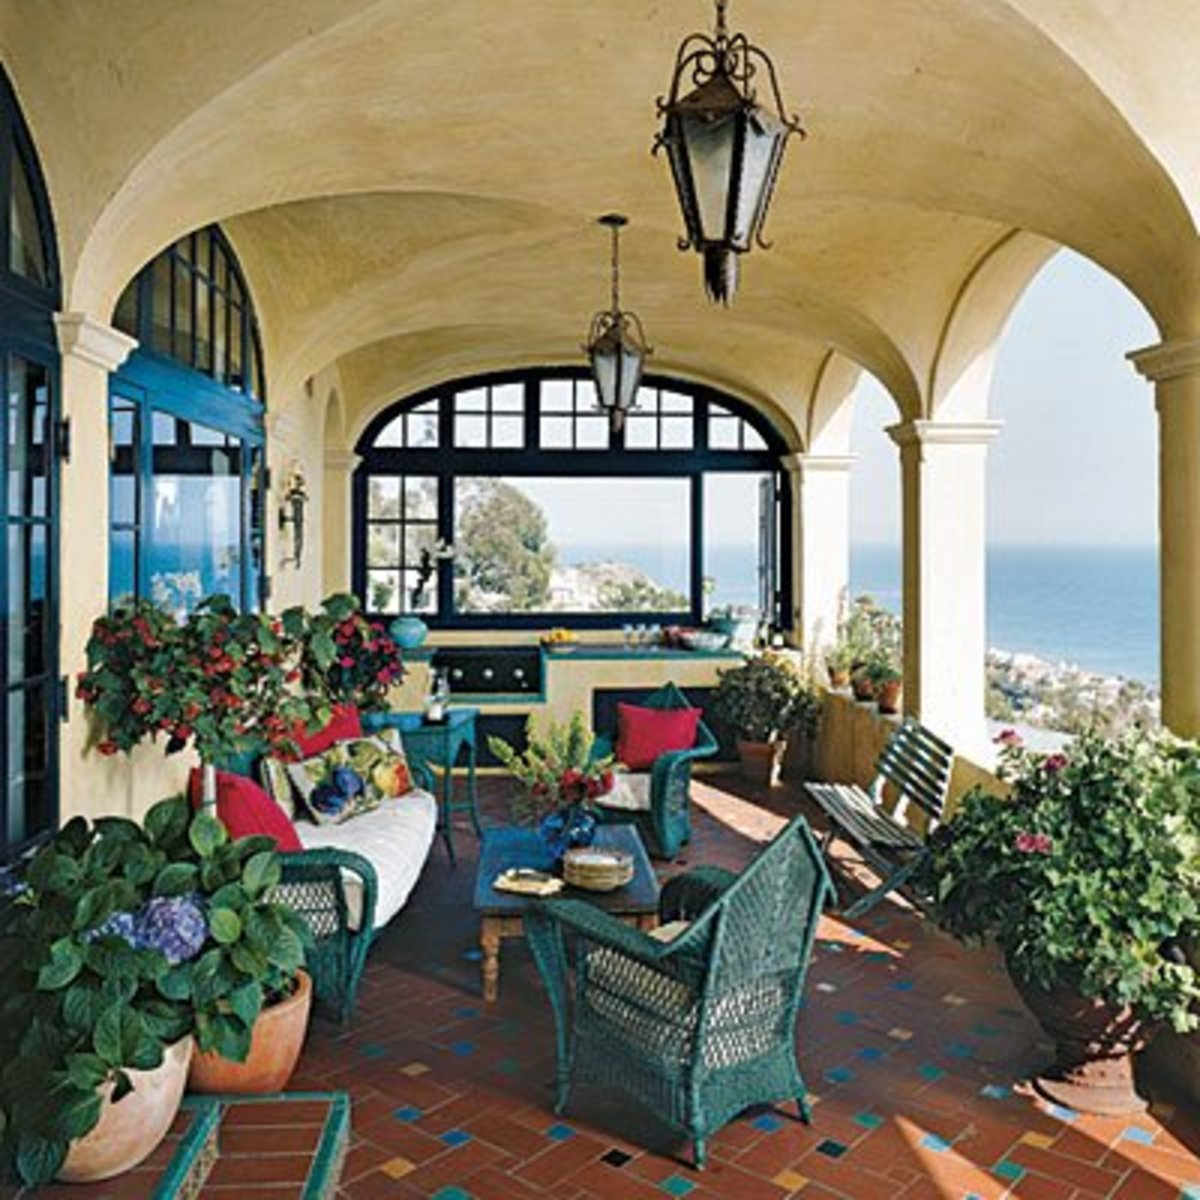 Classic Patio Ideas In Mediterranean Style: Mediterranean Patios, Pergolas, Stucco Terraces, Water